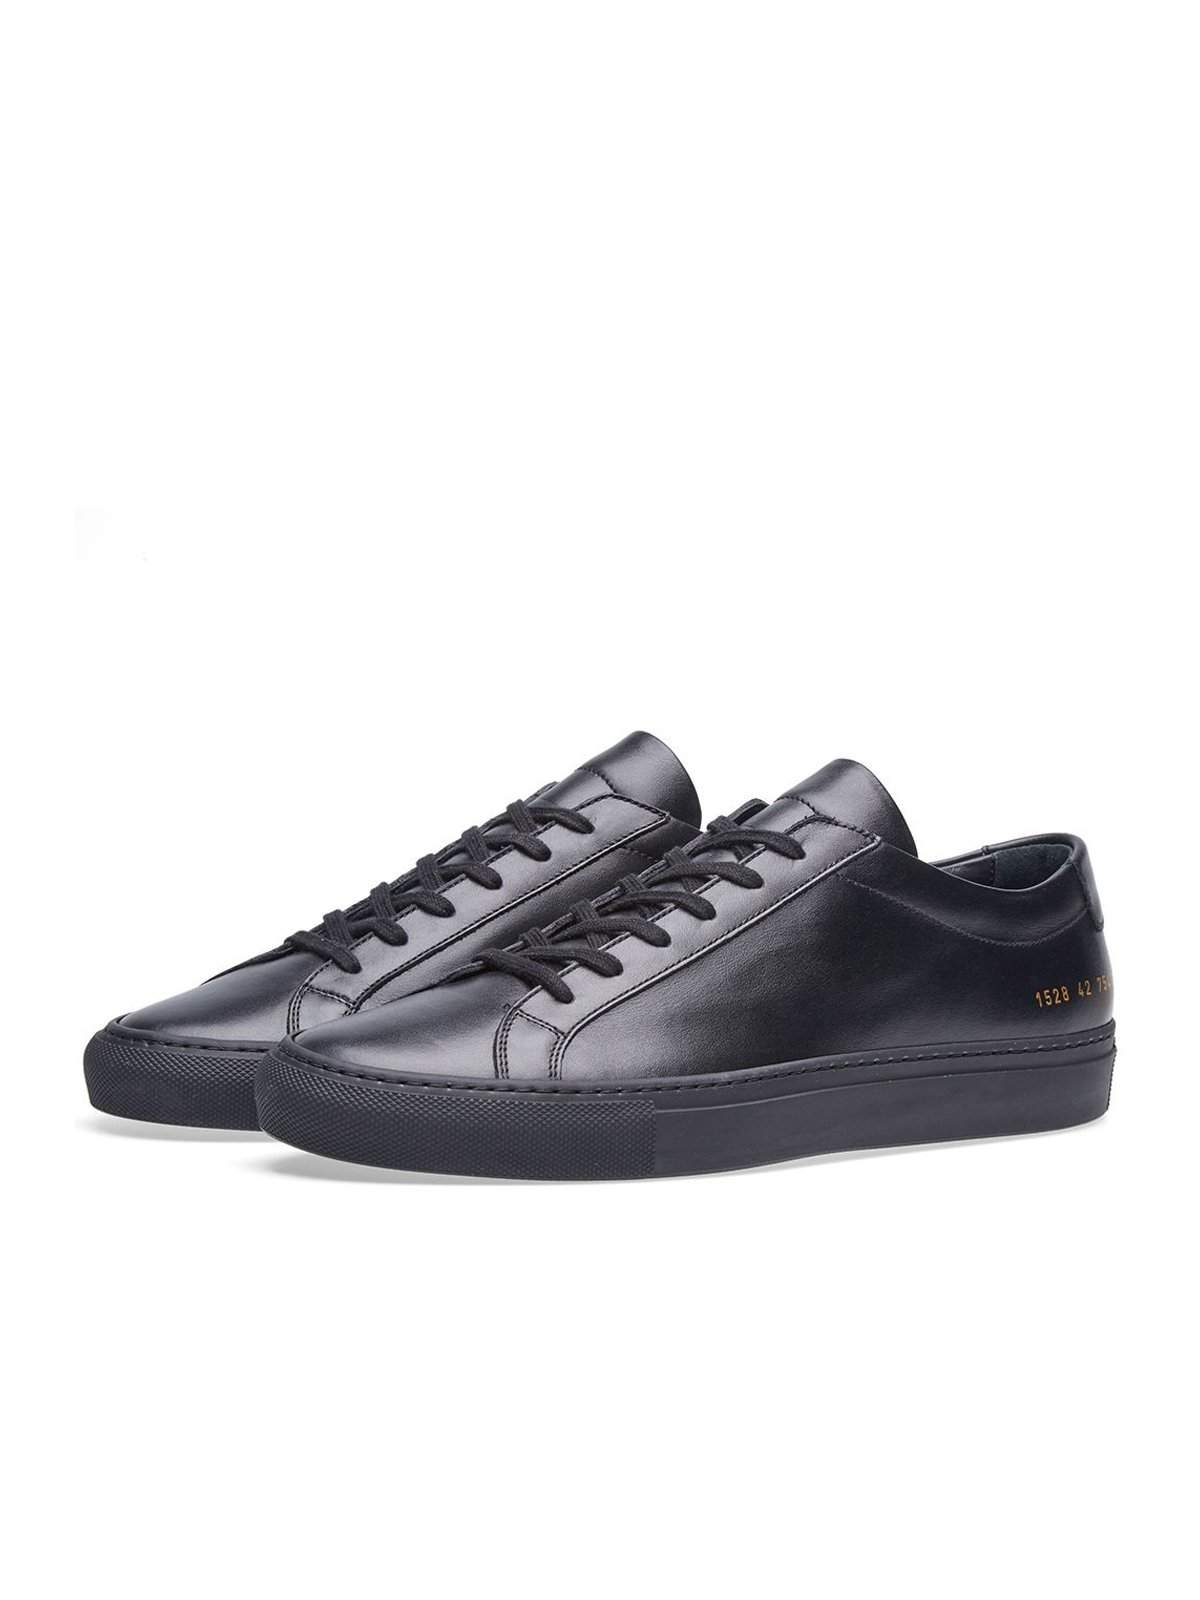 Common Projects Original Achilles Low Black - MORE by Morello Indonesia